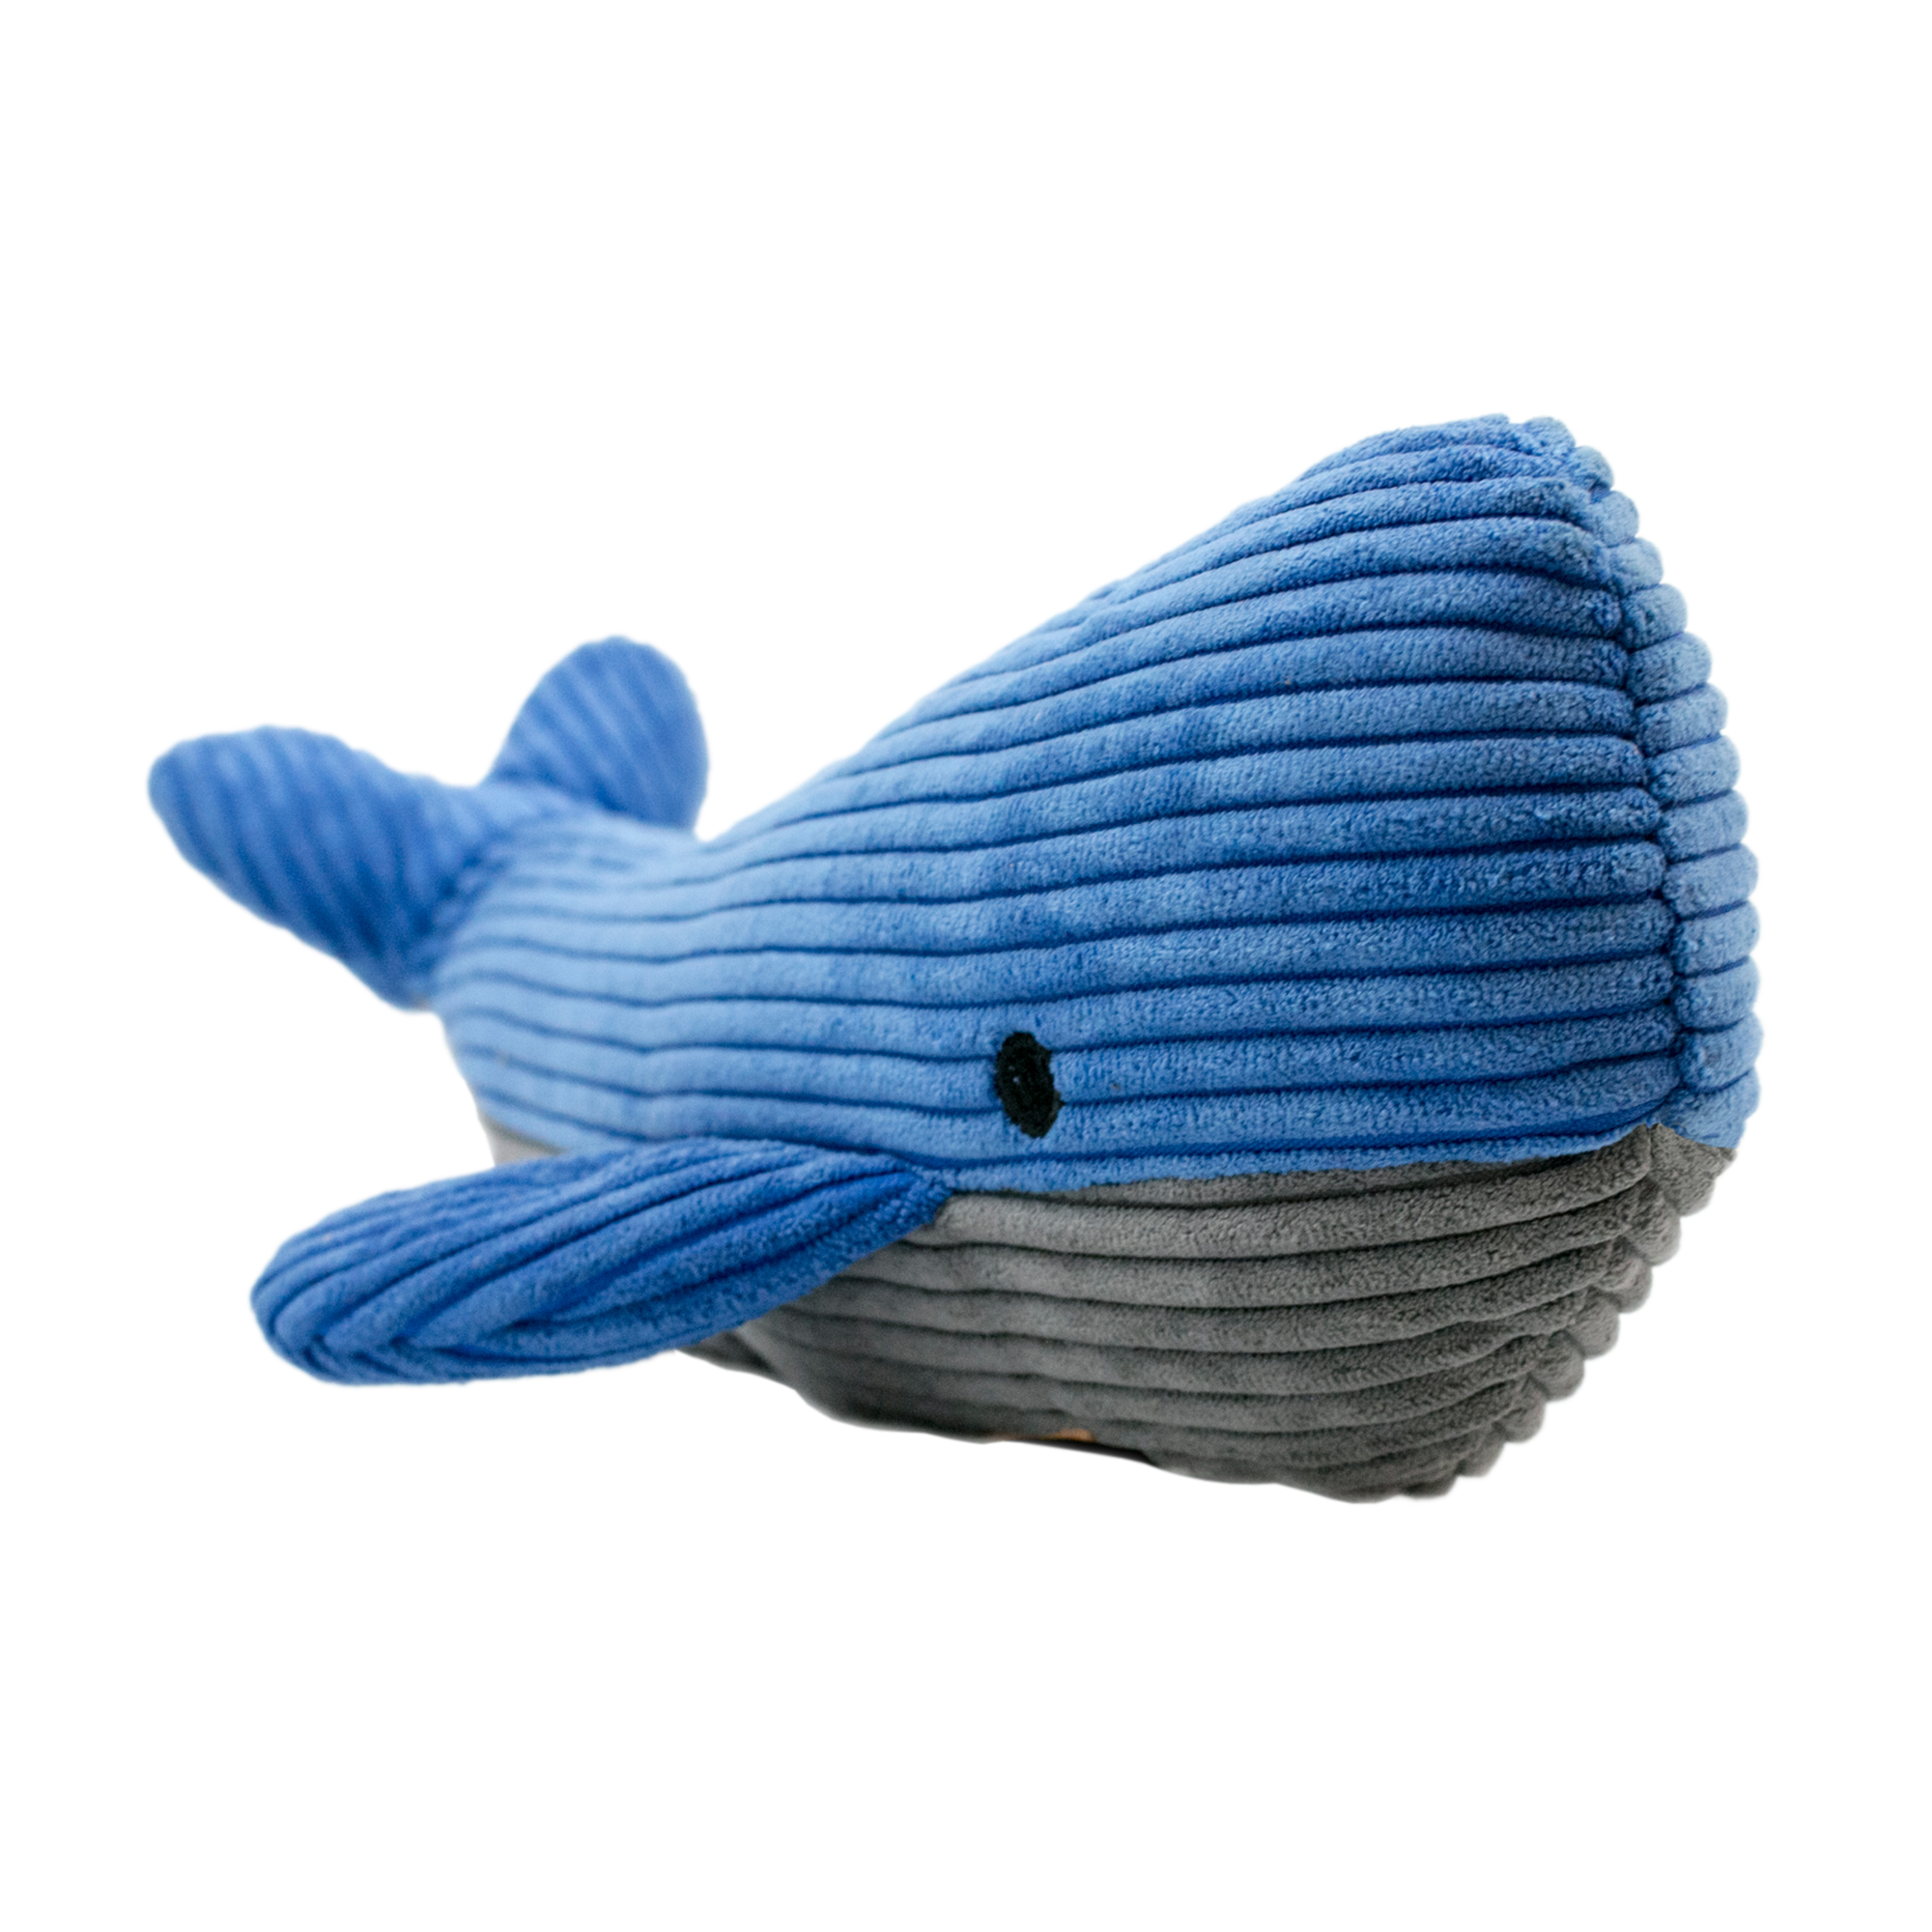 Tall Tails Whale with Squeaker Dog Toy, 12-in. (Size: 12-in.) Image